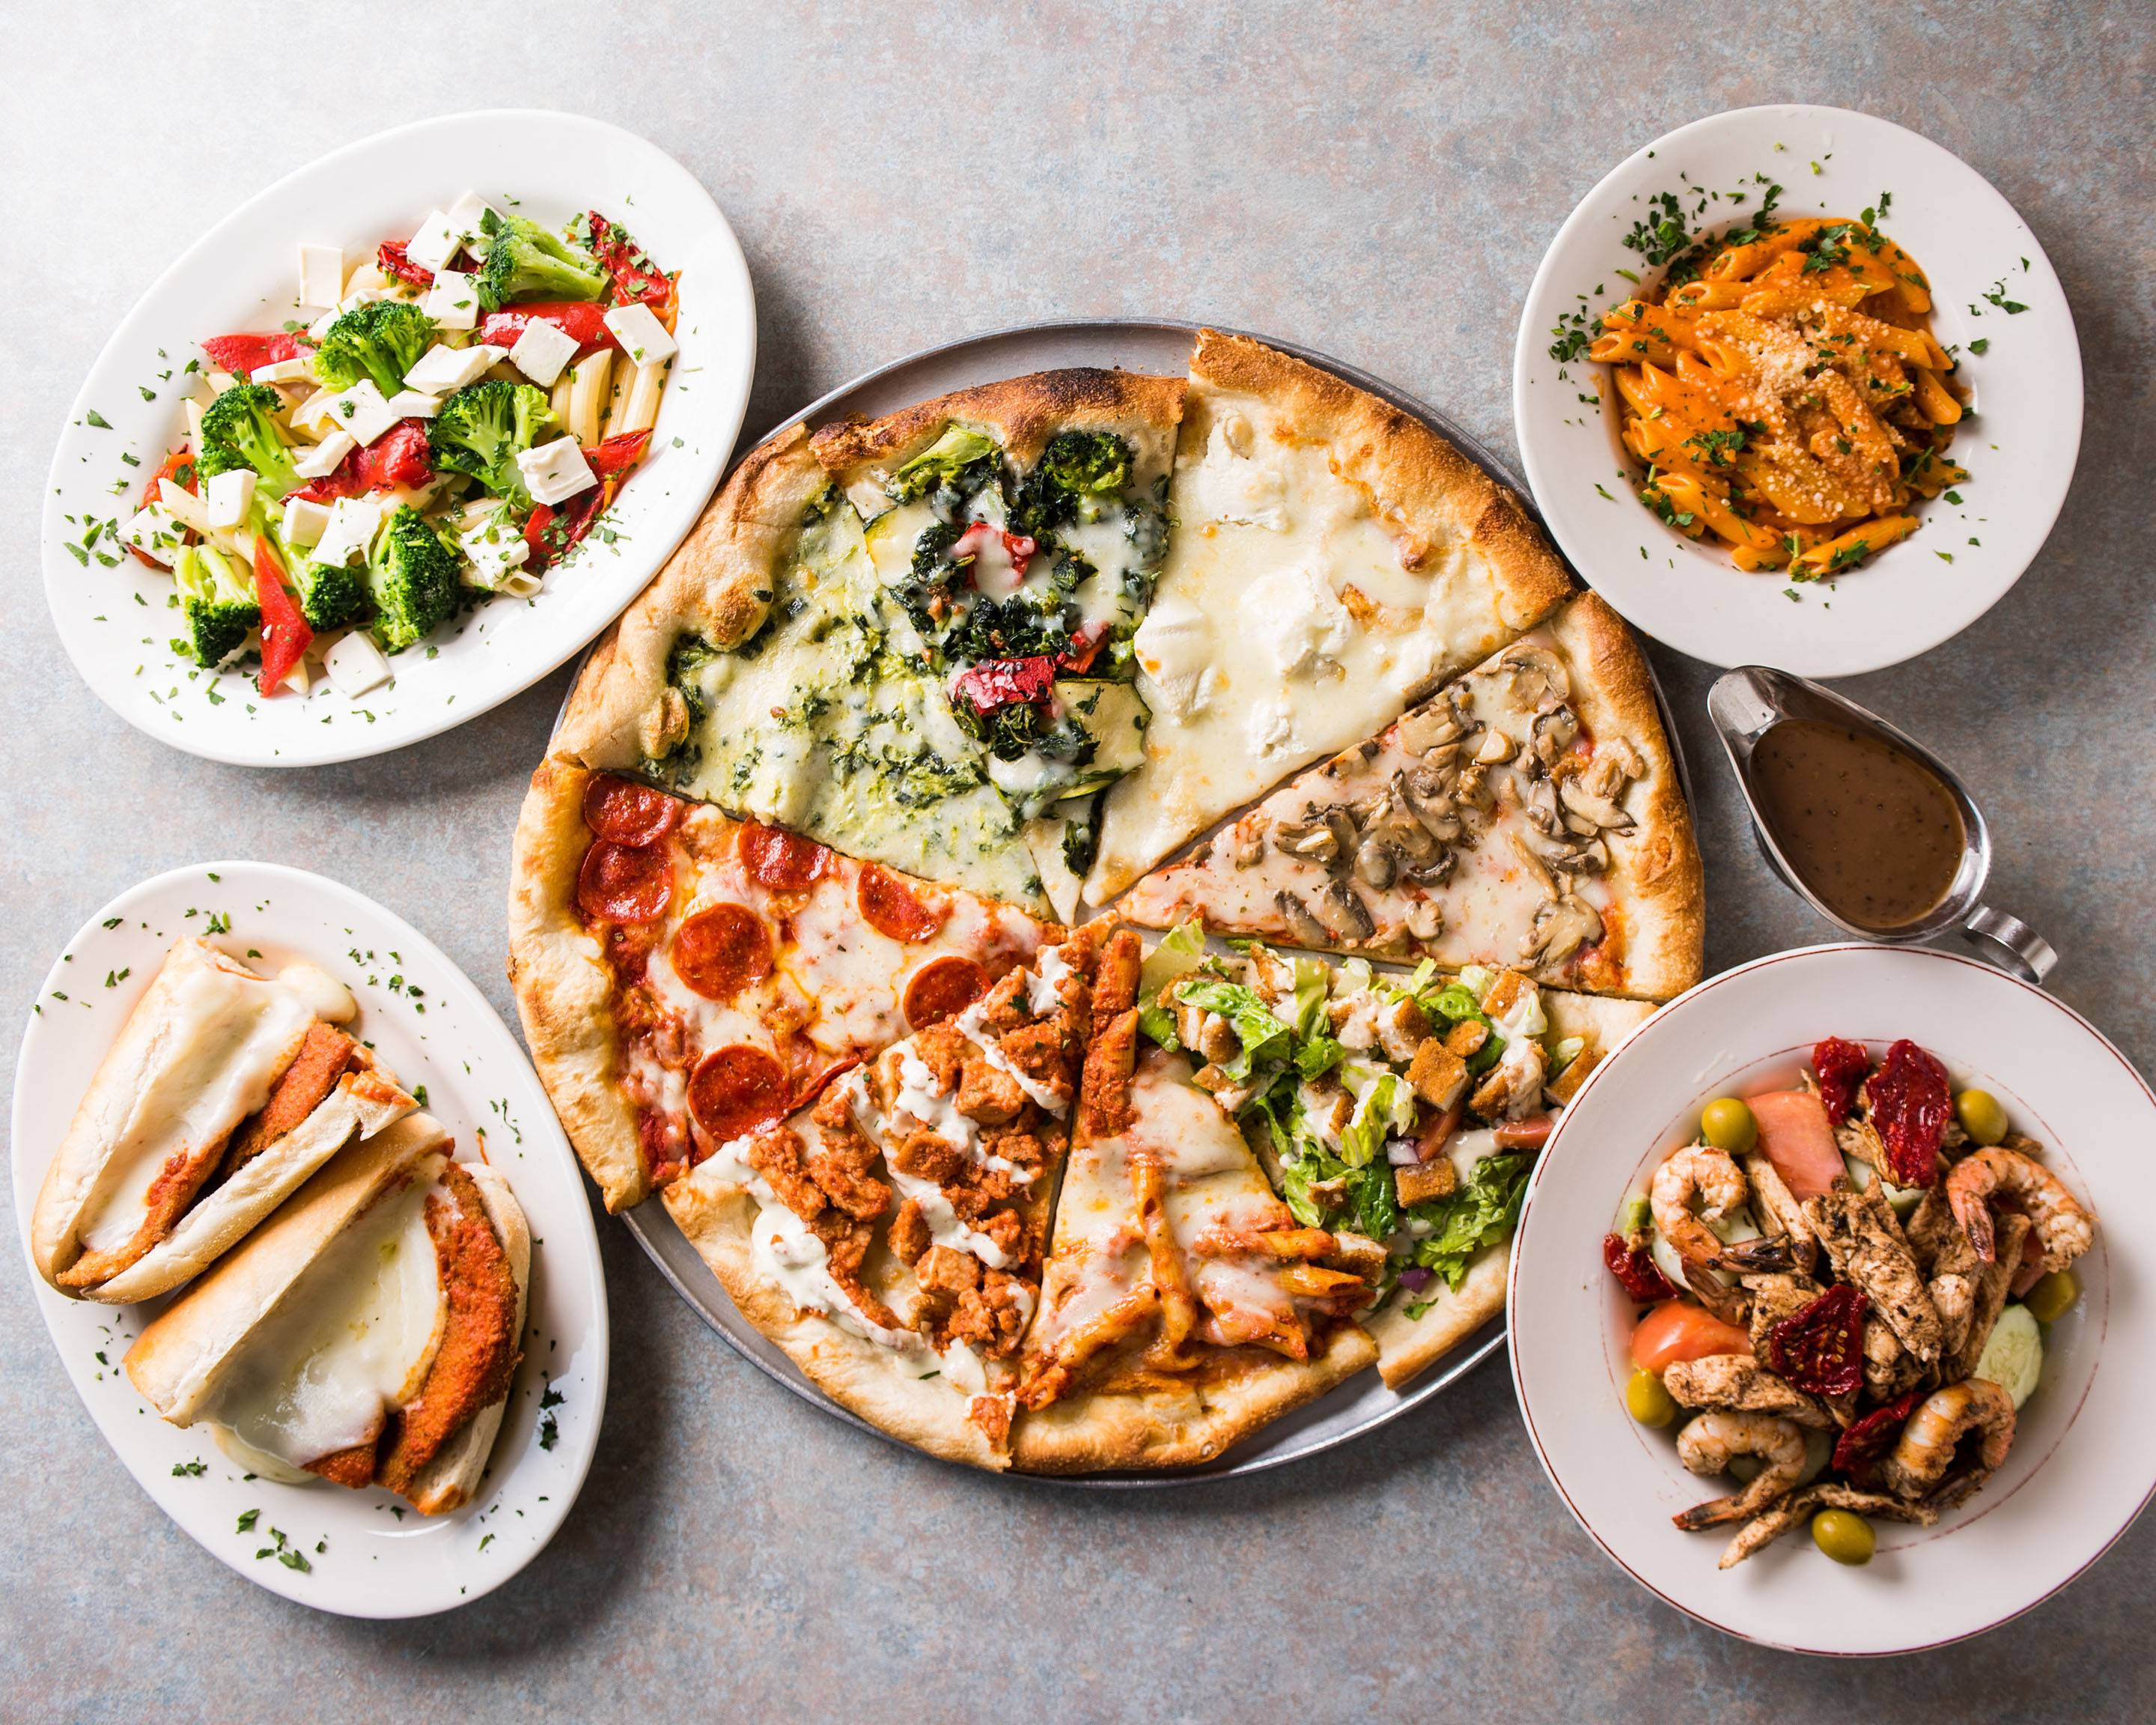 Order Round Table Pizza Delivery Online Sacramento Menu Prices Uber Eats